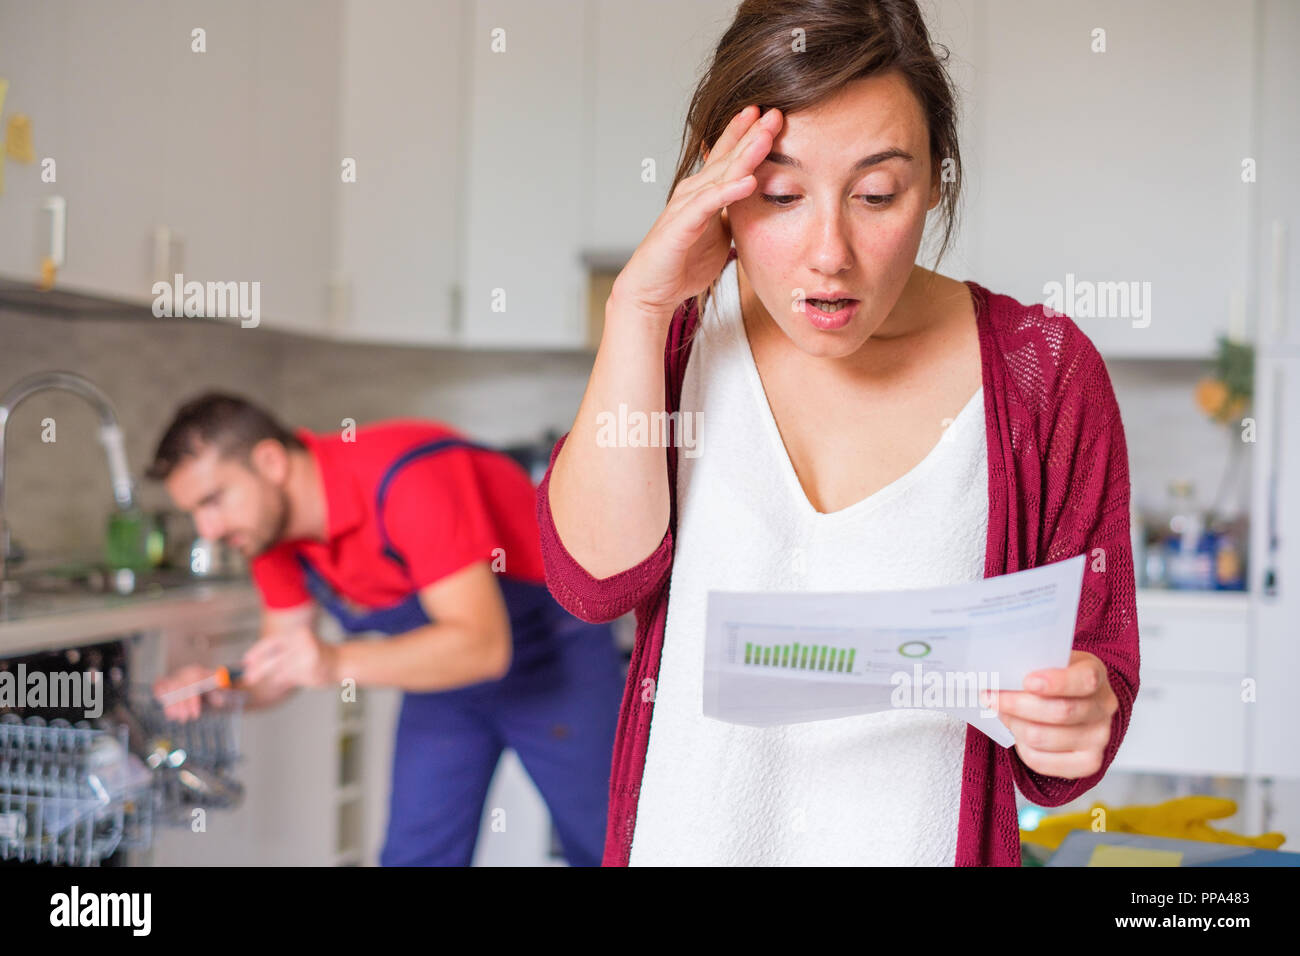 Housewife shocked after reading repair cost estimate of domestic appliance - Stock Image